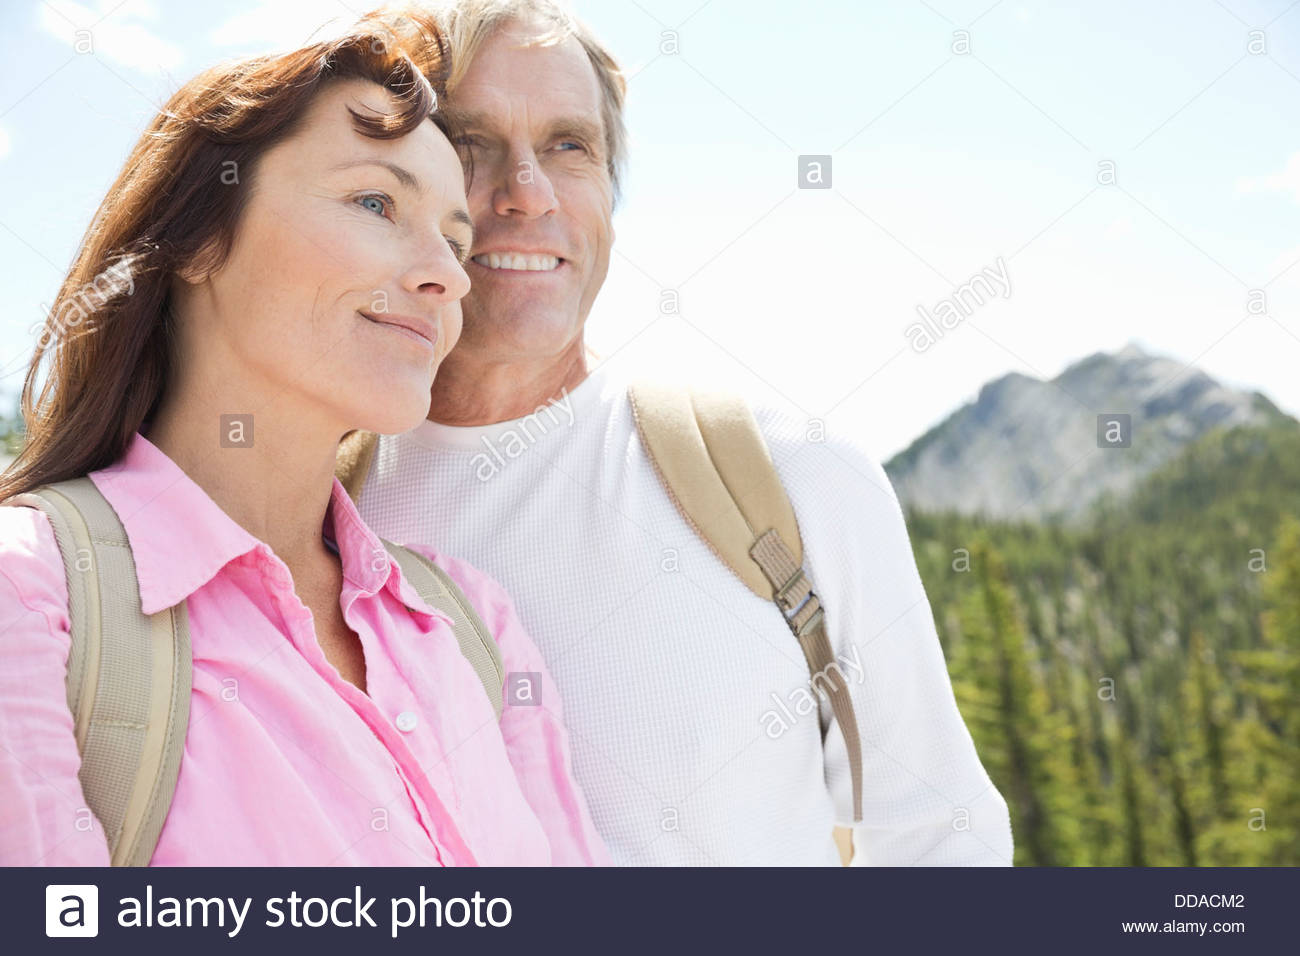 Active couple smiling outdoors - Stock Image